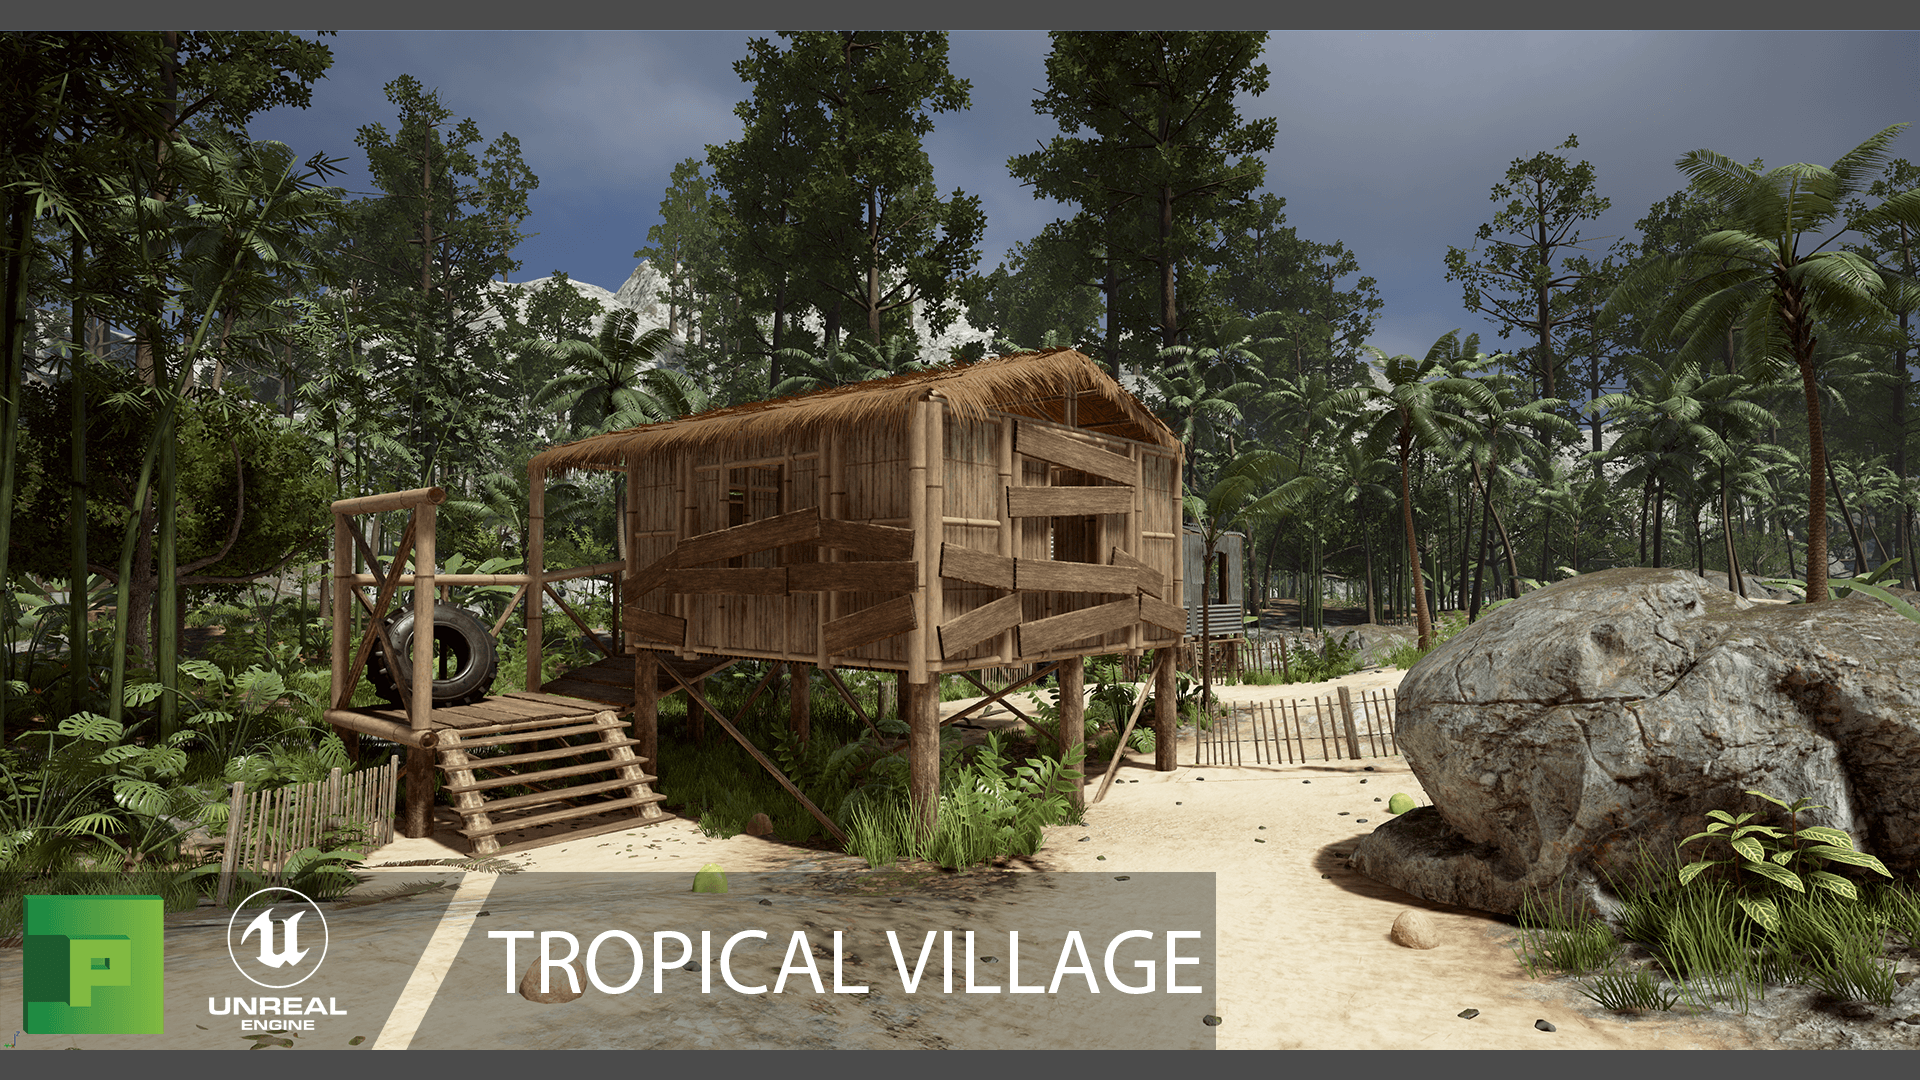 TropicalVillage_01